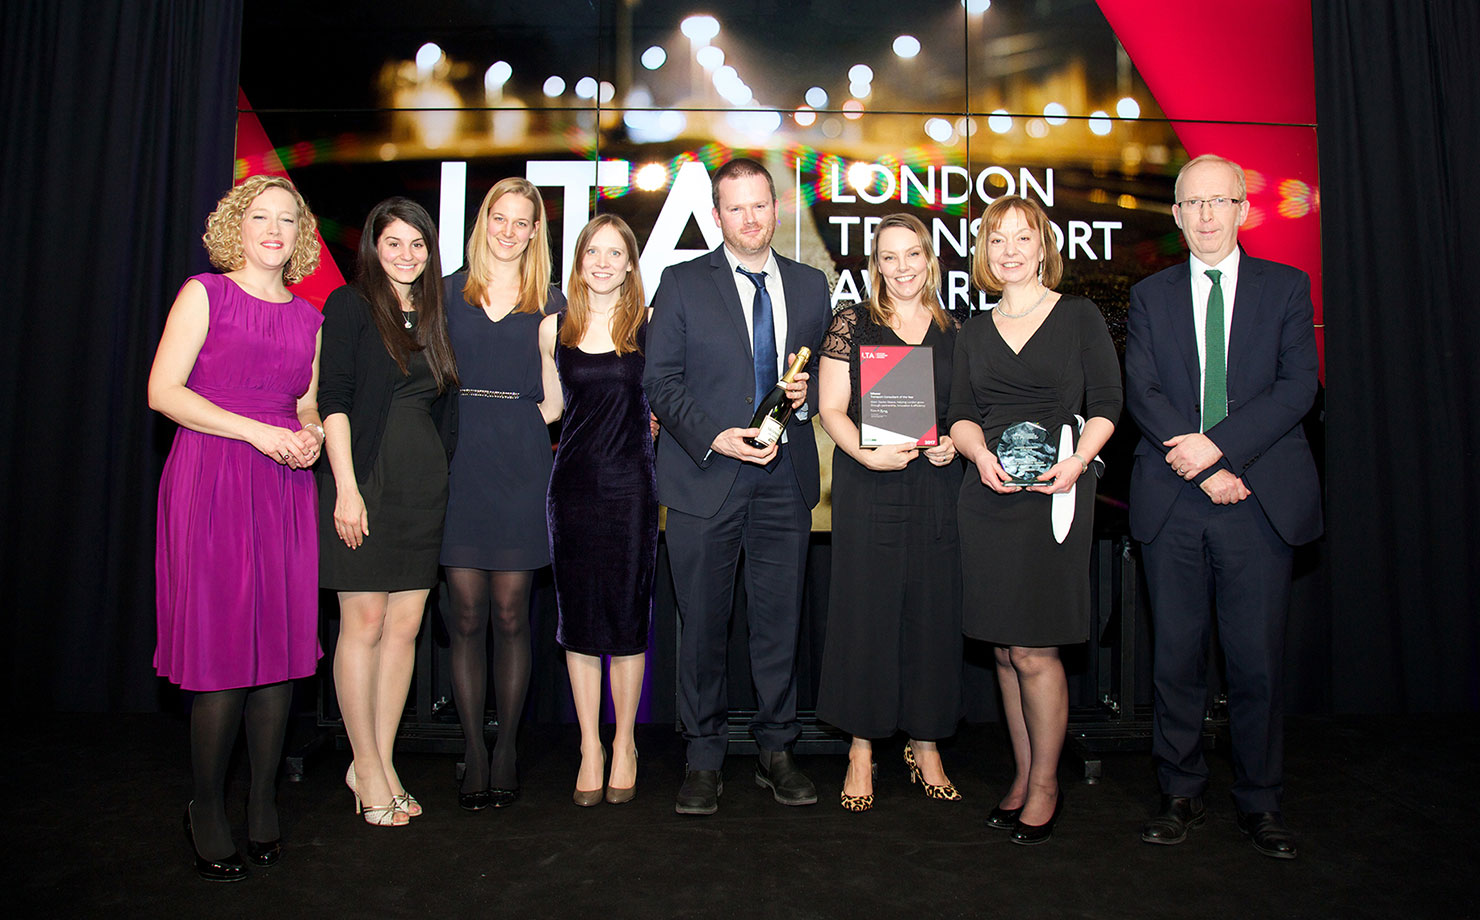 The team accepting the Transport Consultant of the Year award at the London Transport Awards 2017